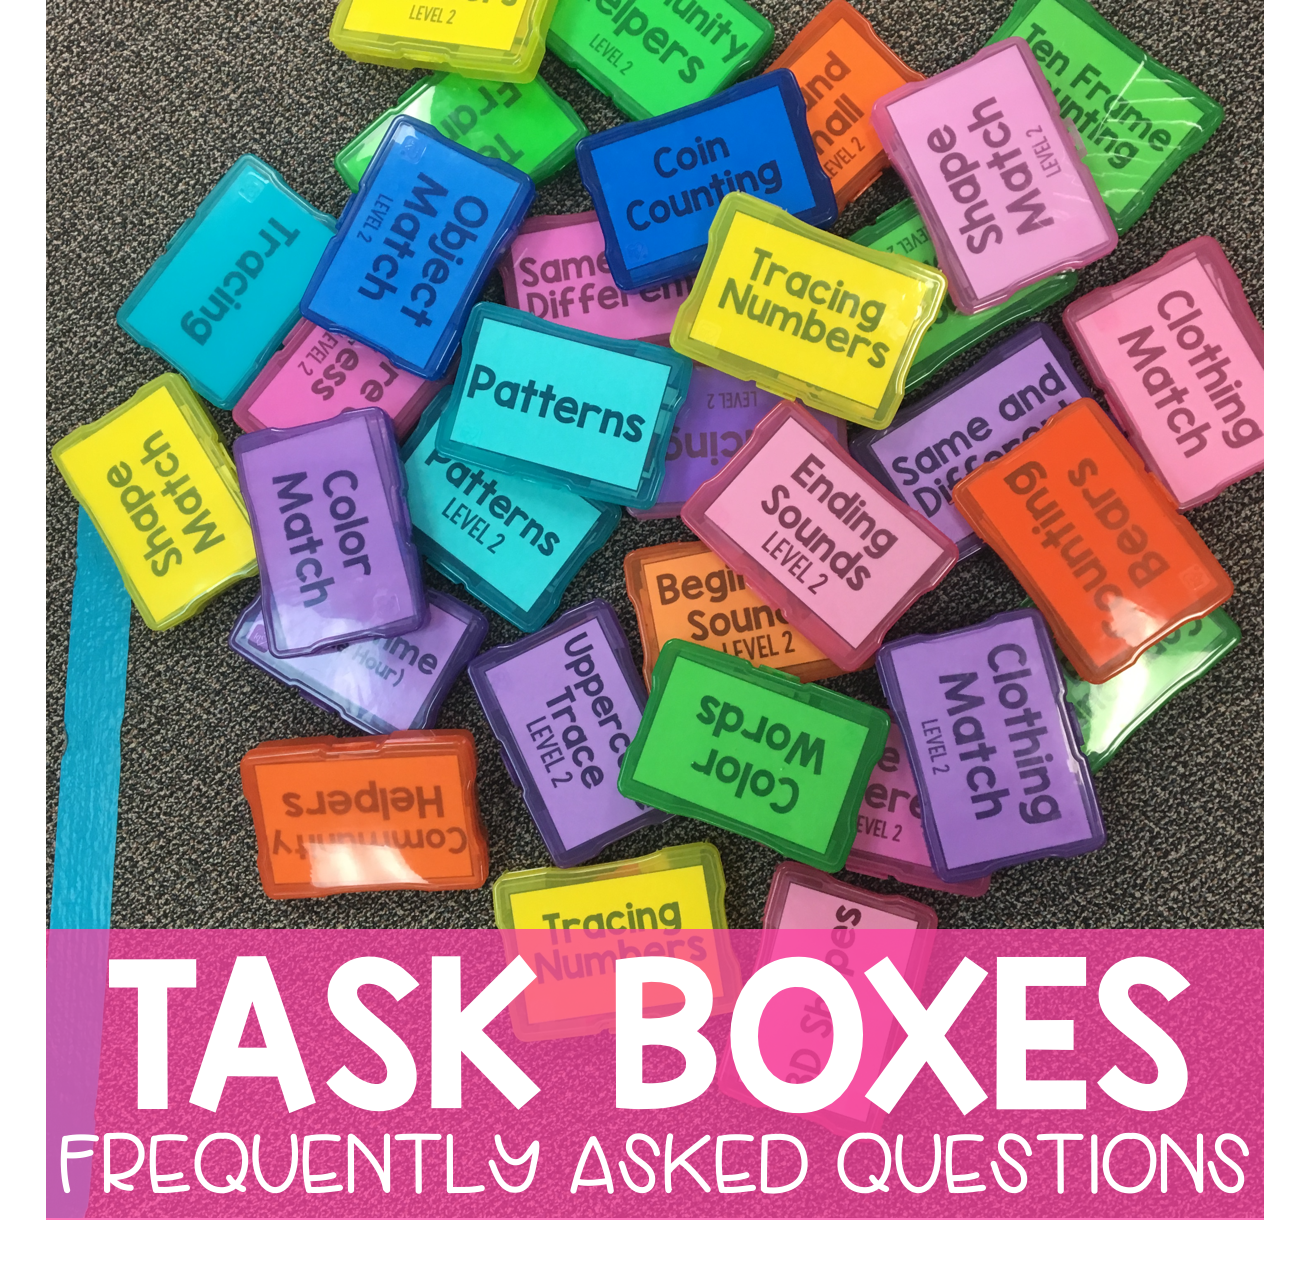 Whats In Label In Special Ed Words >> Faq Task Boxes